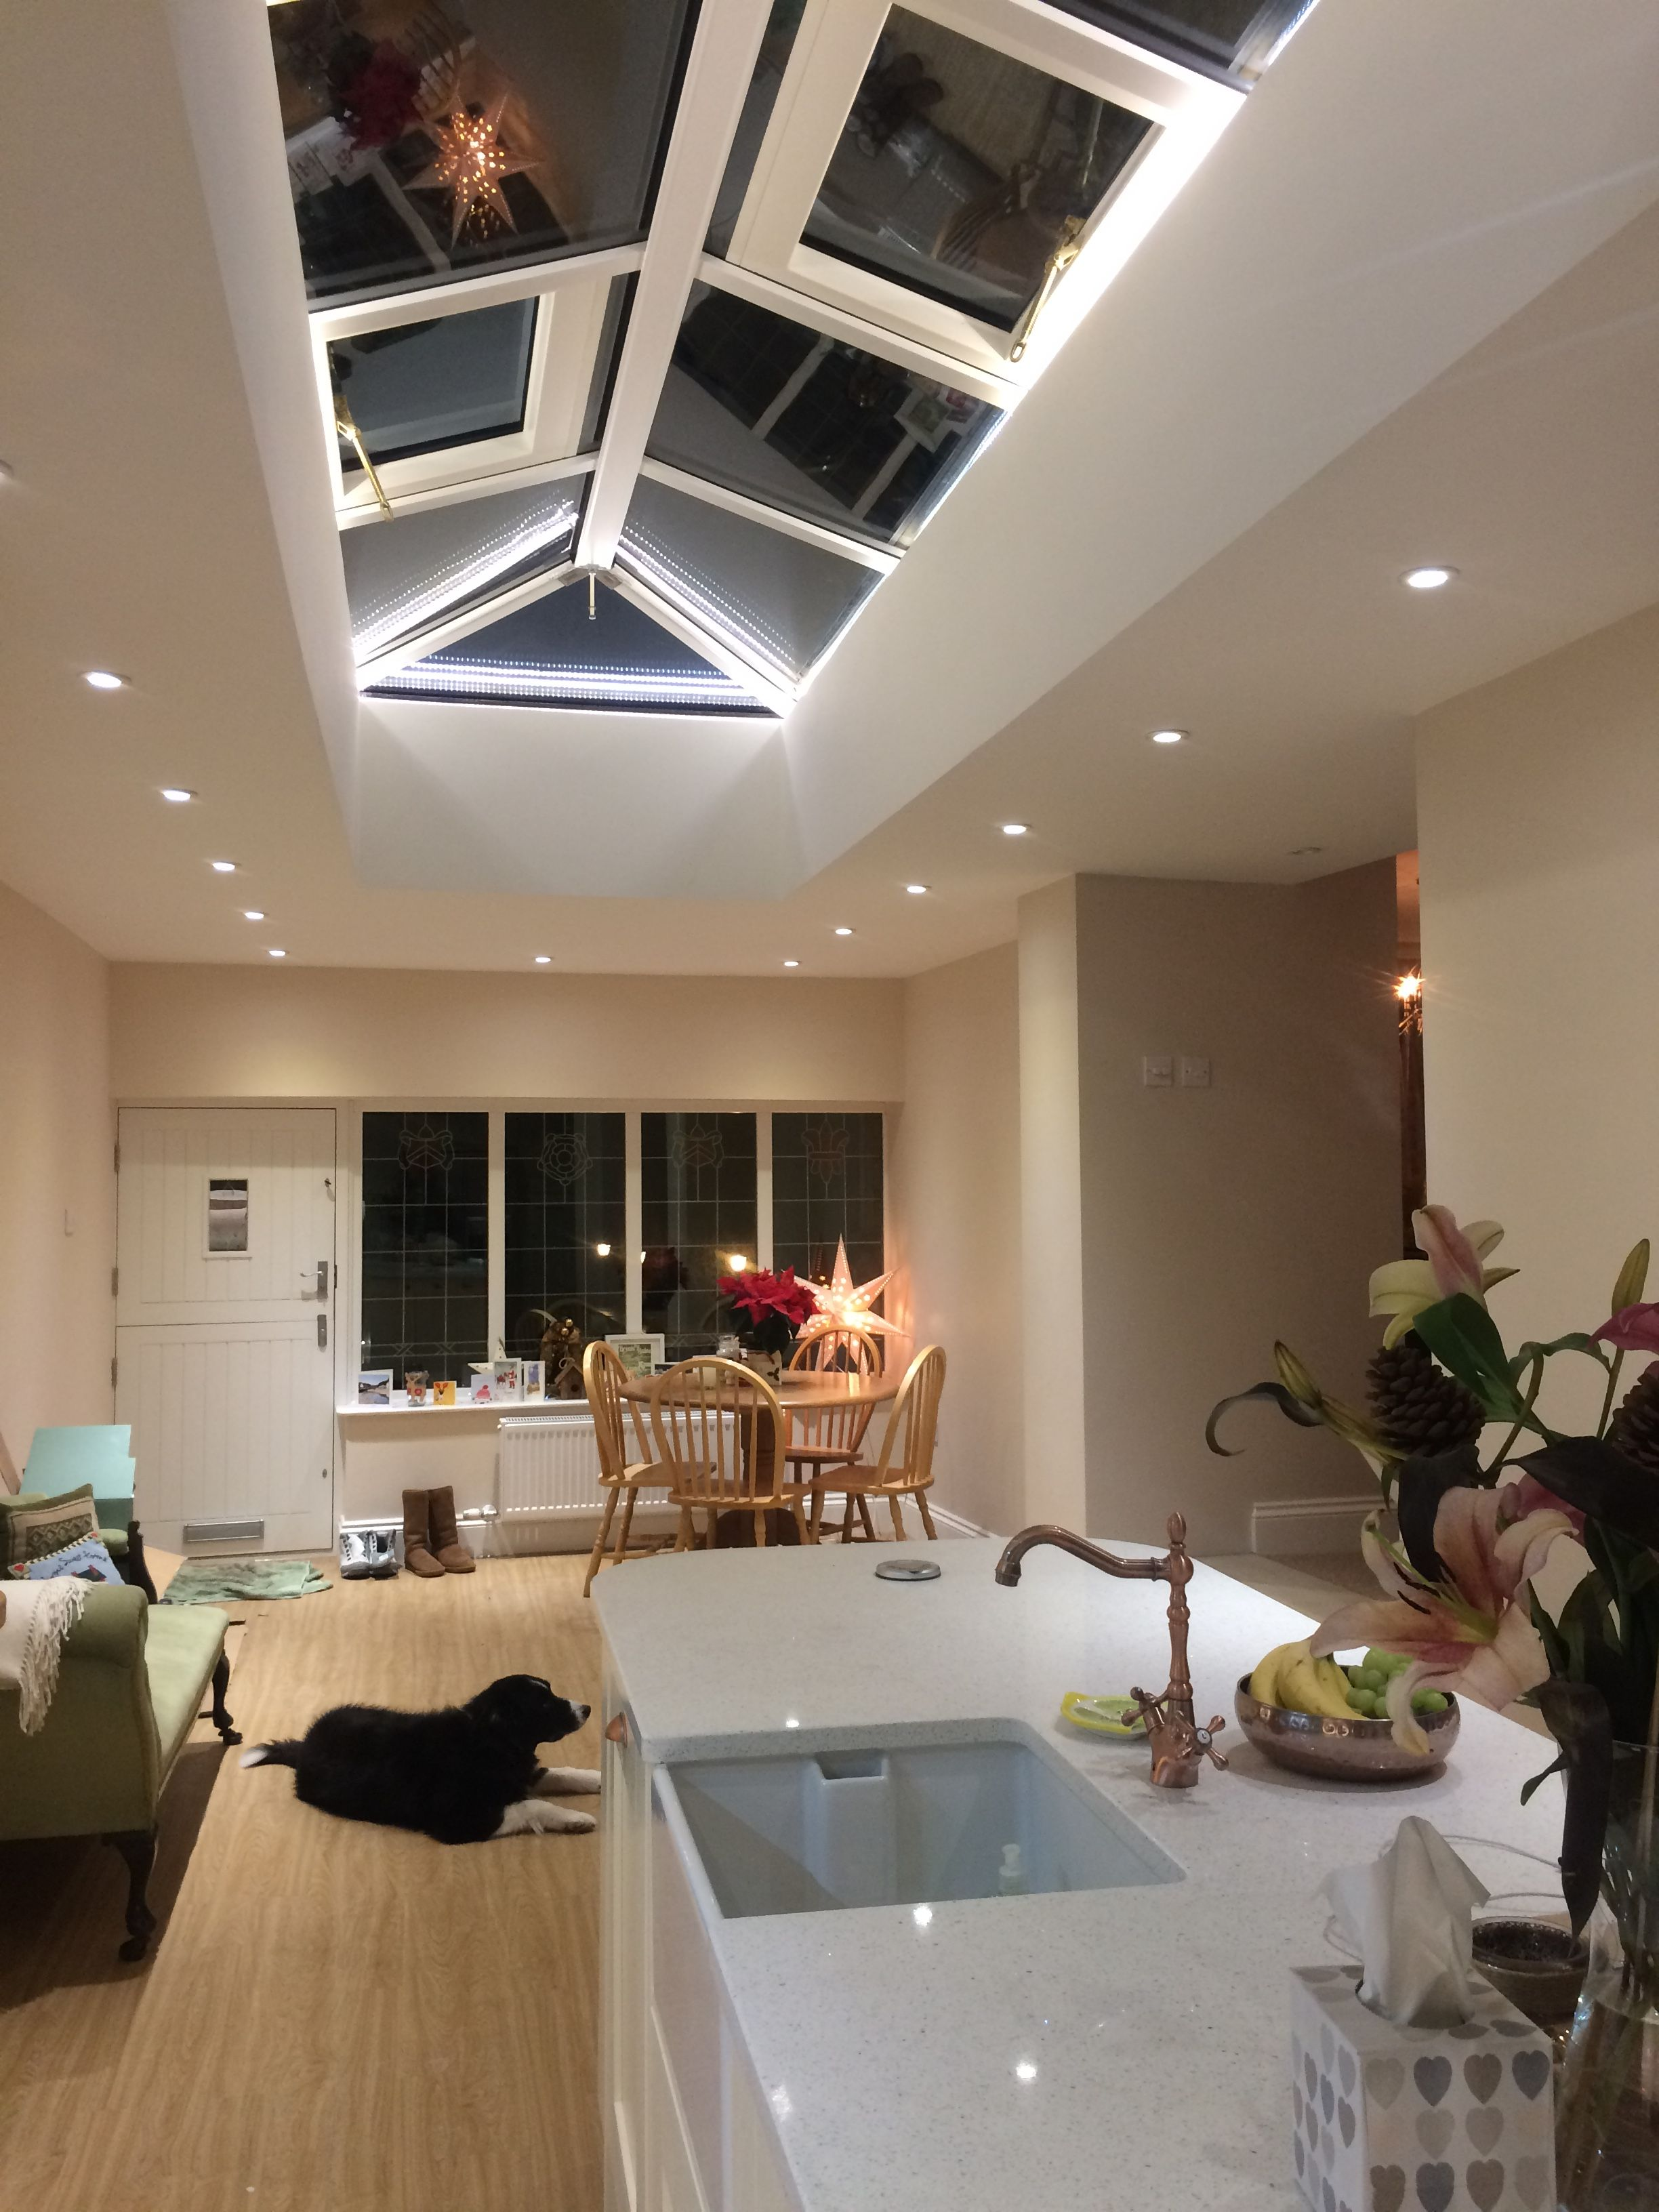 The Roof Lantern Light Has Led Strip Lights Hidden Within